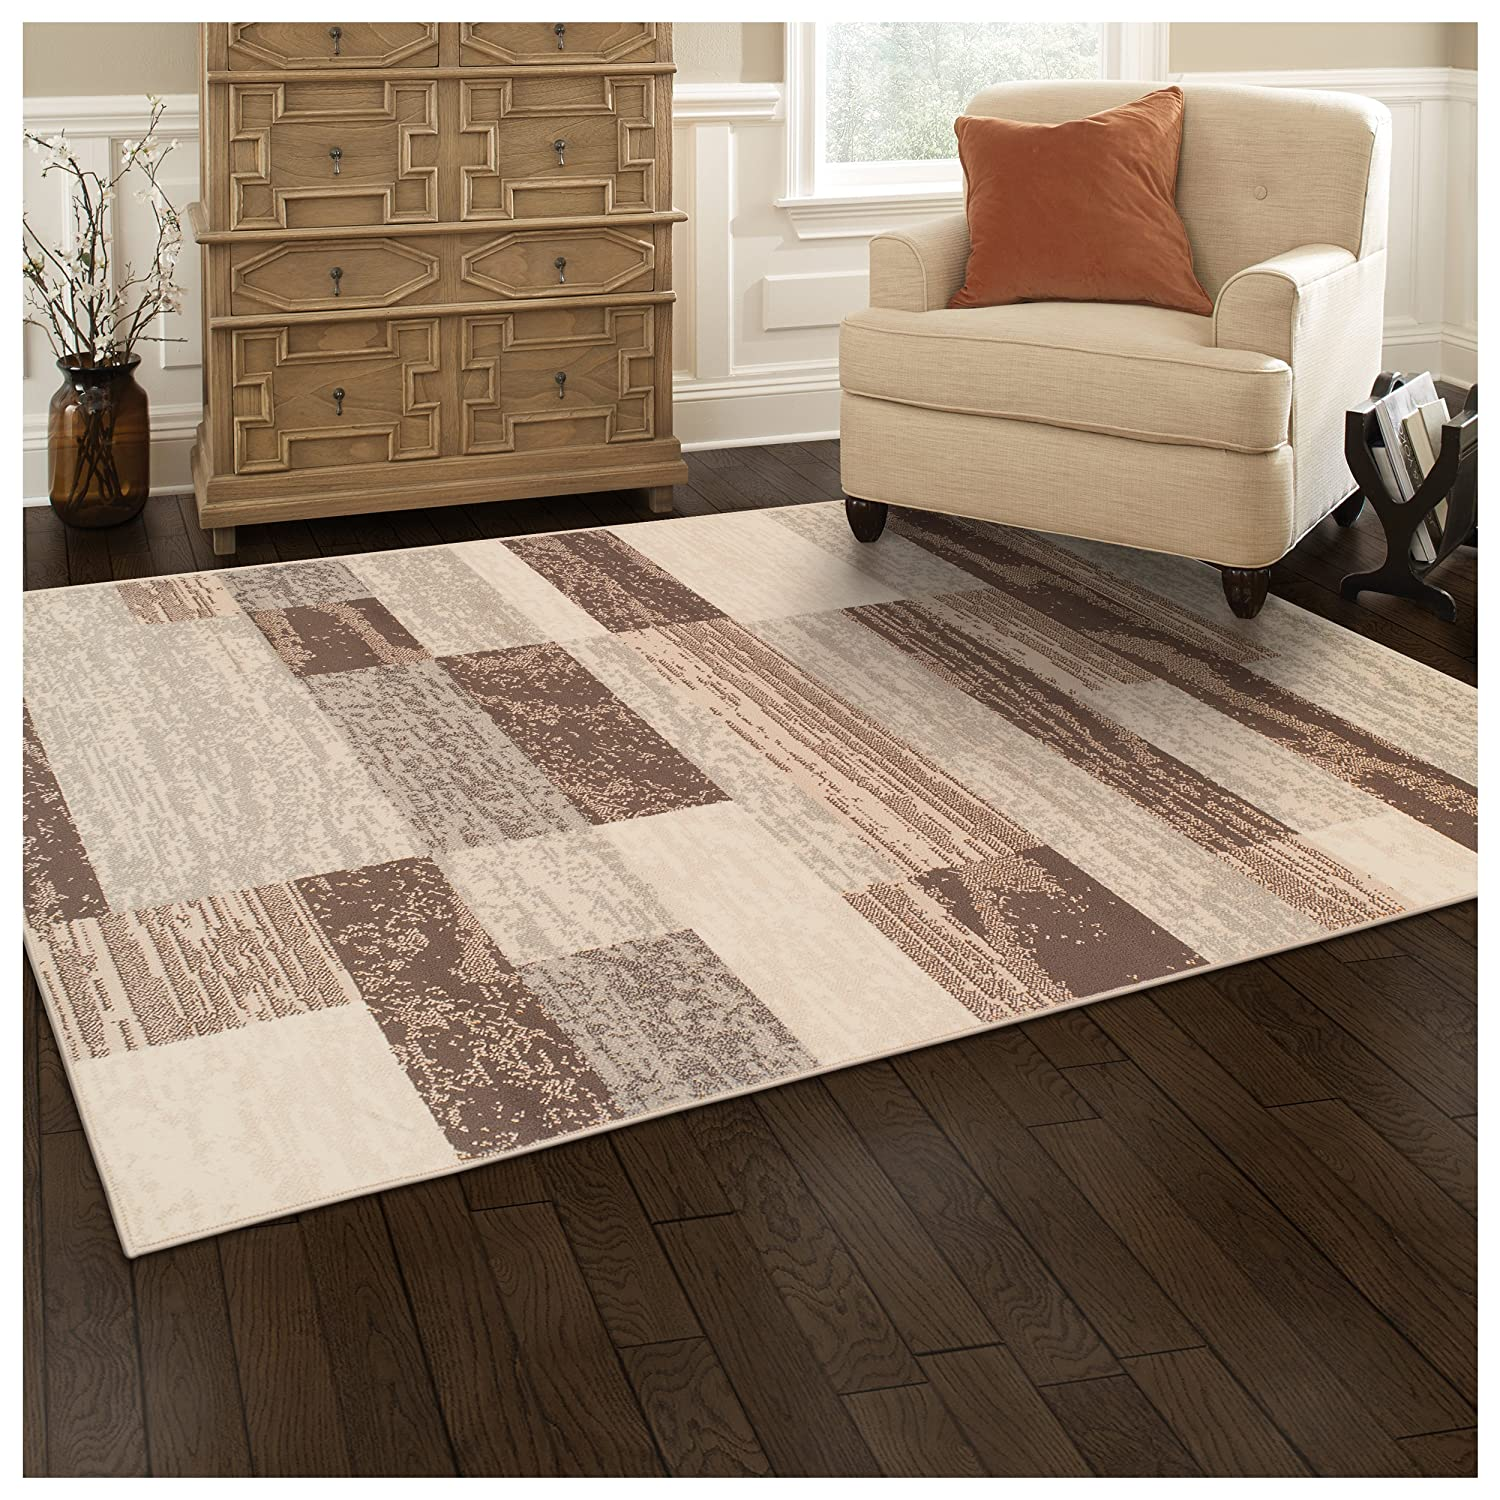 Superior Modern Rockwood Collection Area Rug, 8mm Pile Height with Jute Backing, Textured Geometric Brick Design, Anti-Static, Water-Repellent Rugs - Slate, 8' x 10' Rug